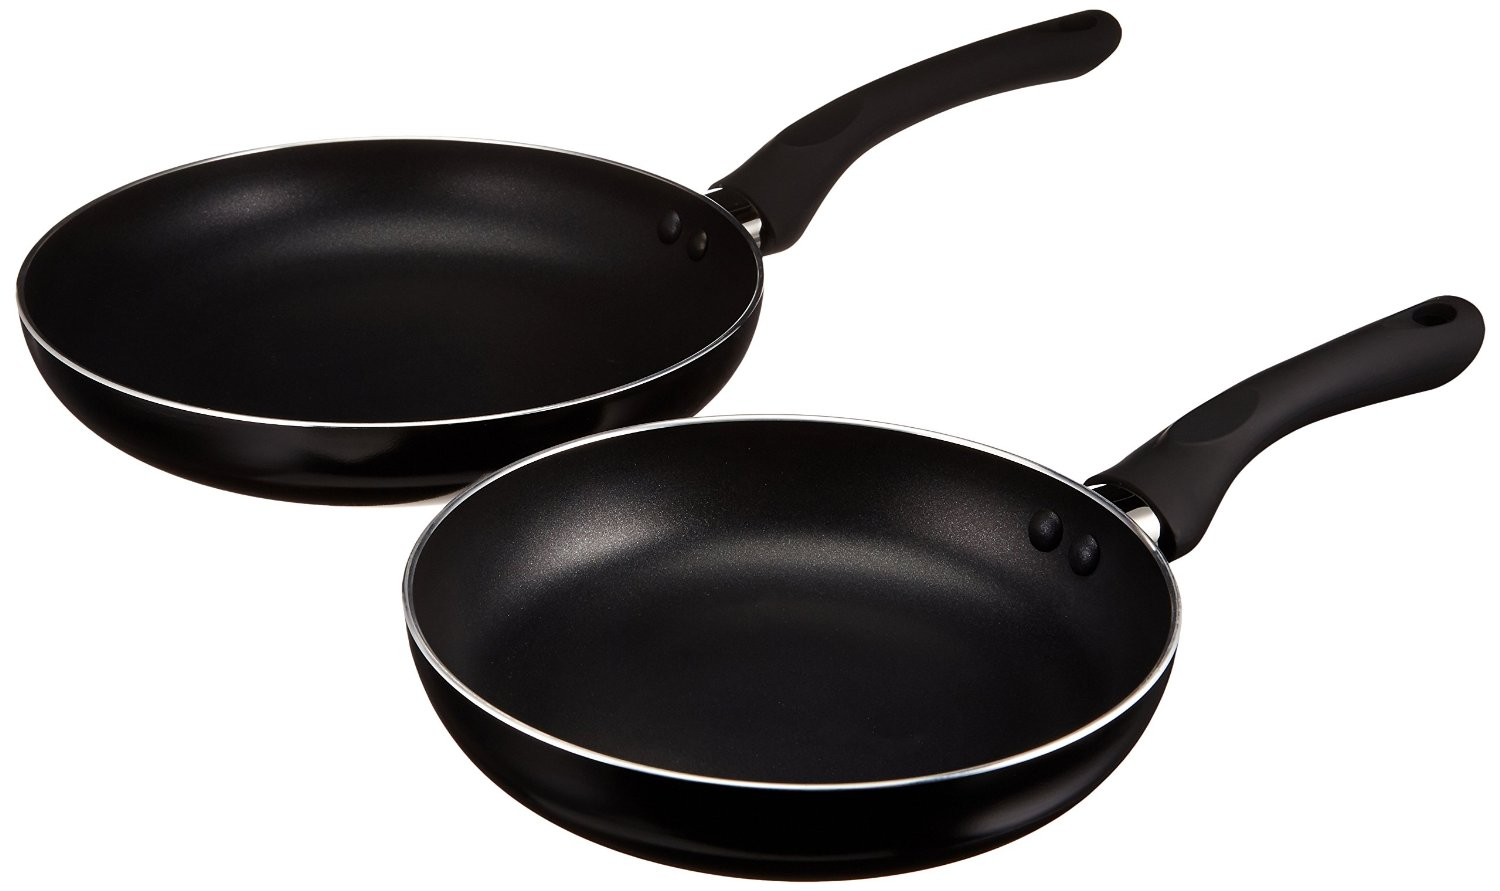 induction bottom aluminum nonstick frying pan grey fry pan 11 inches dishwasher safe cookware. Black Bedroom Furniture Sets. Home Design Ideas